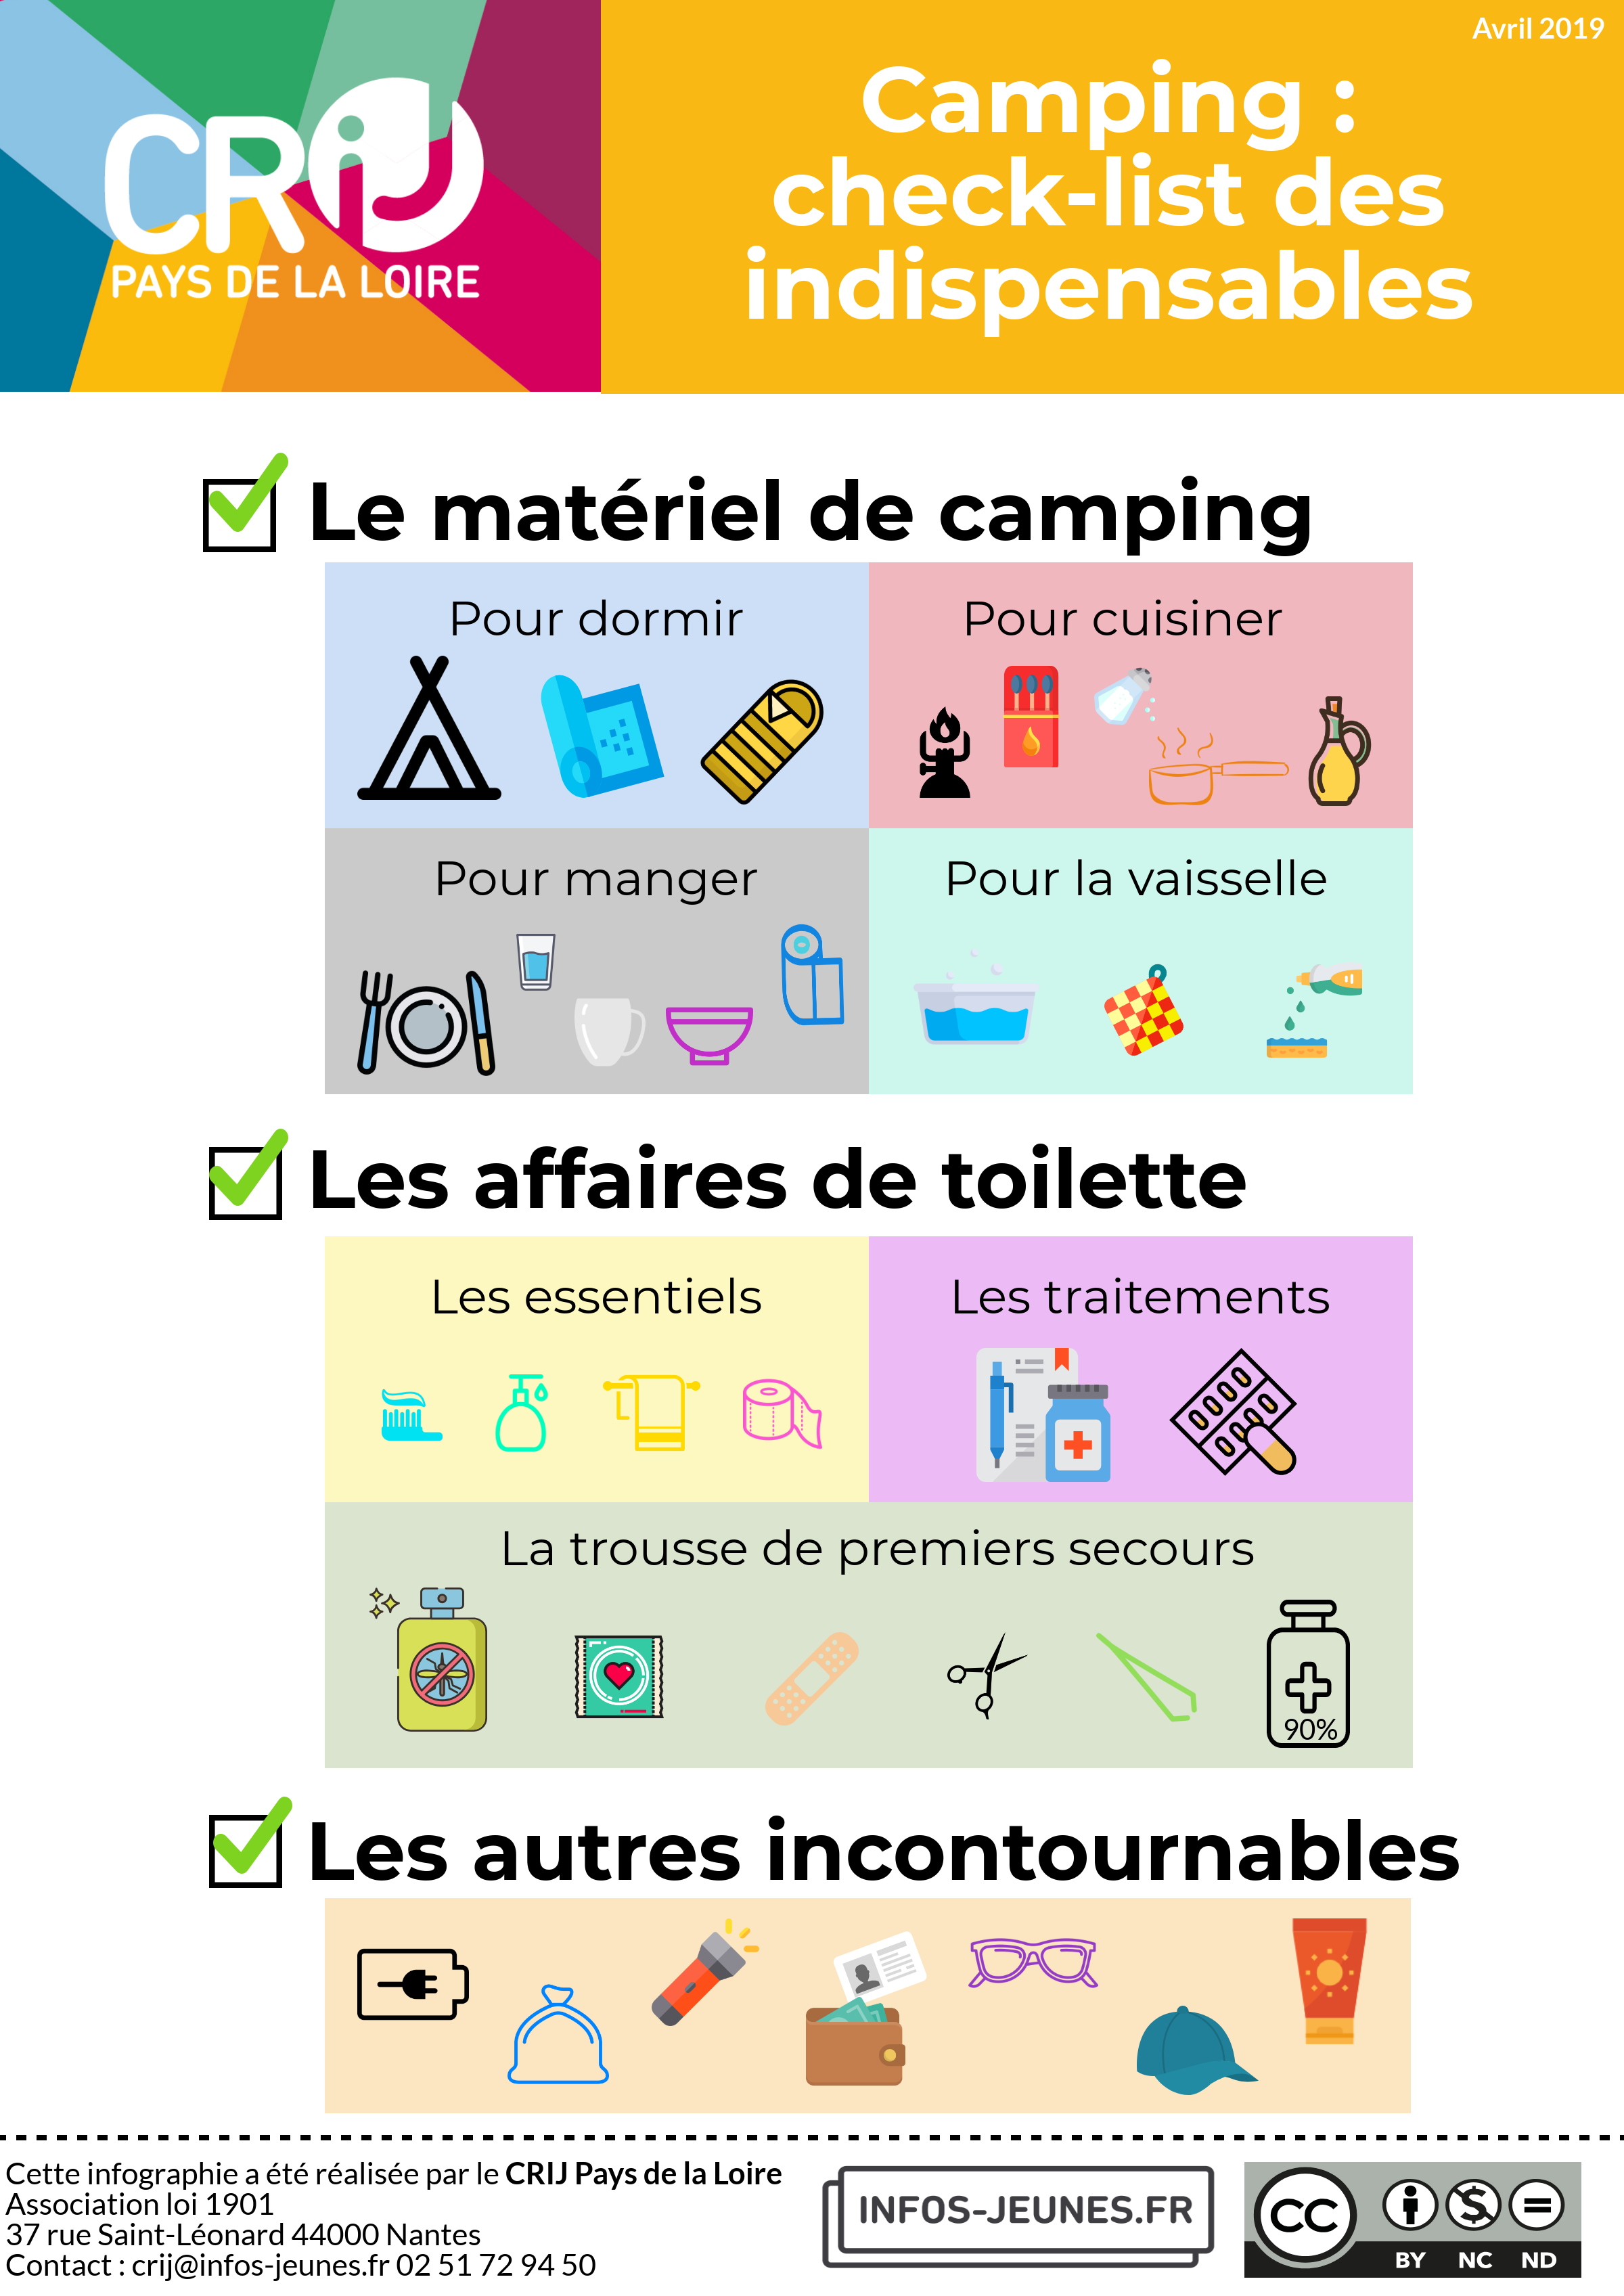 Camping - check-list des indispensables